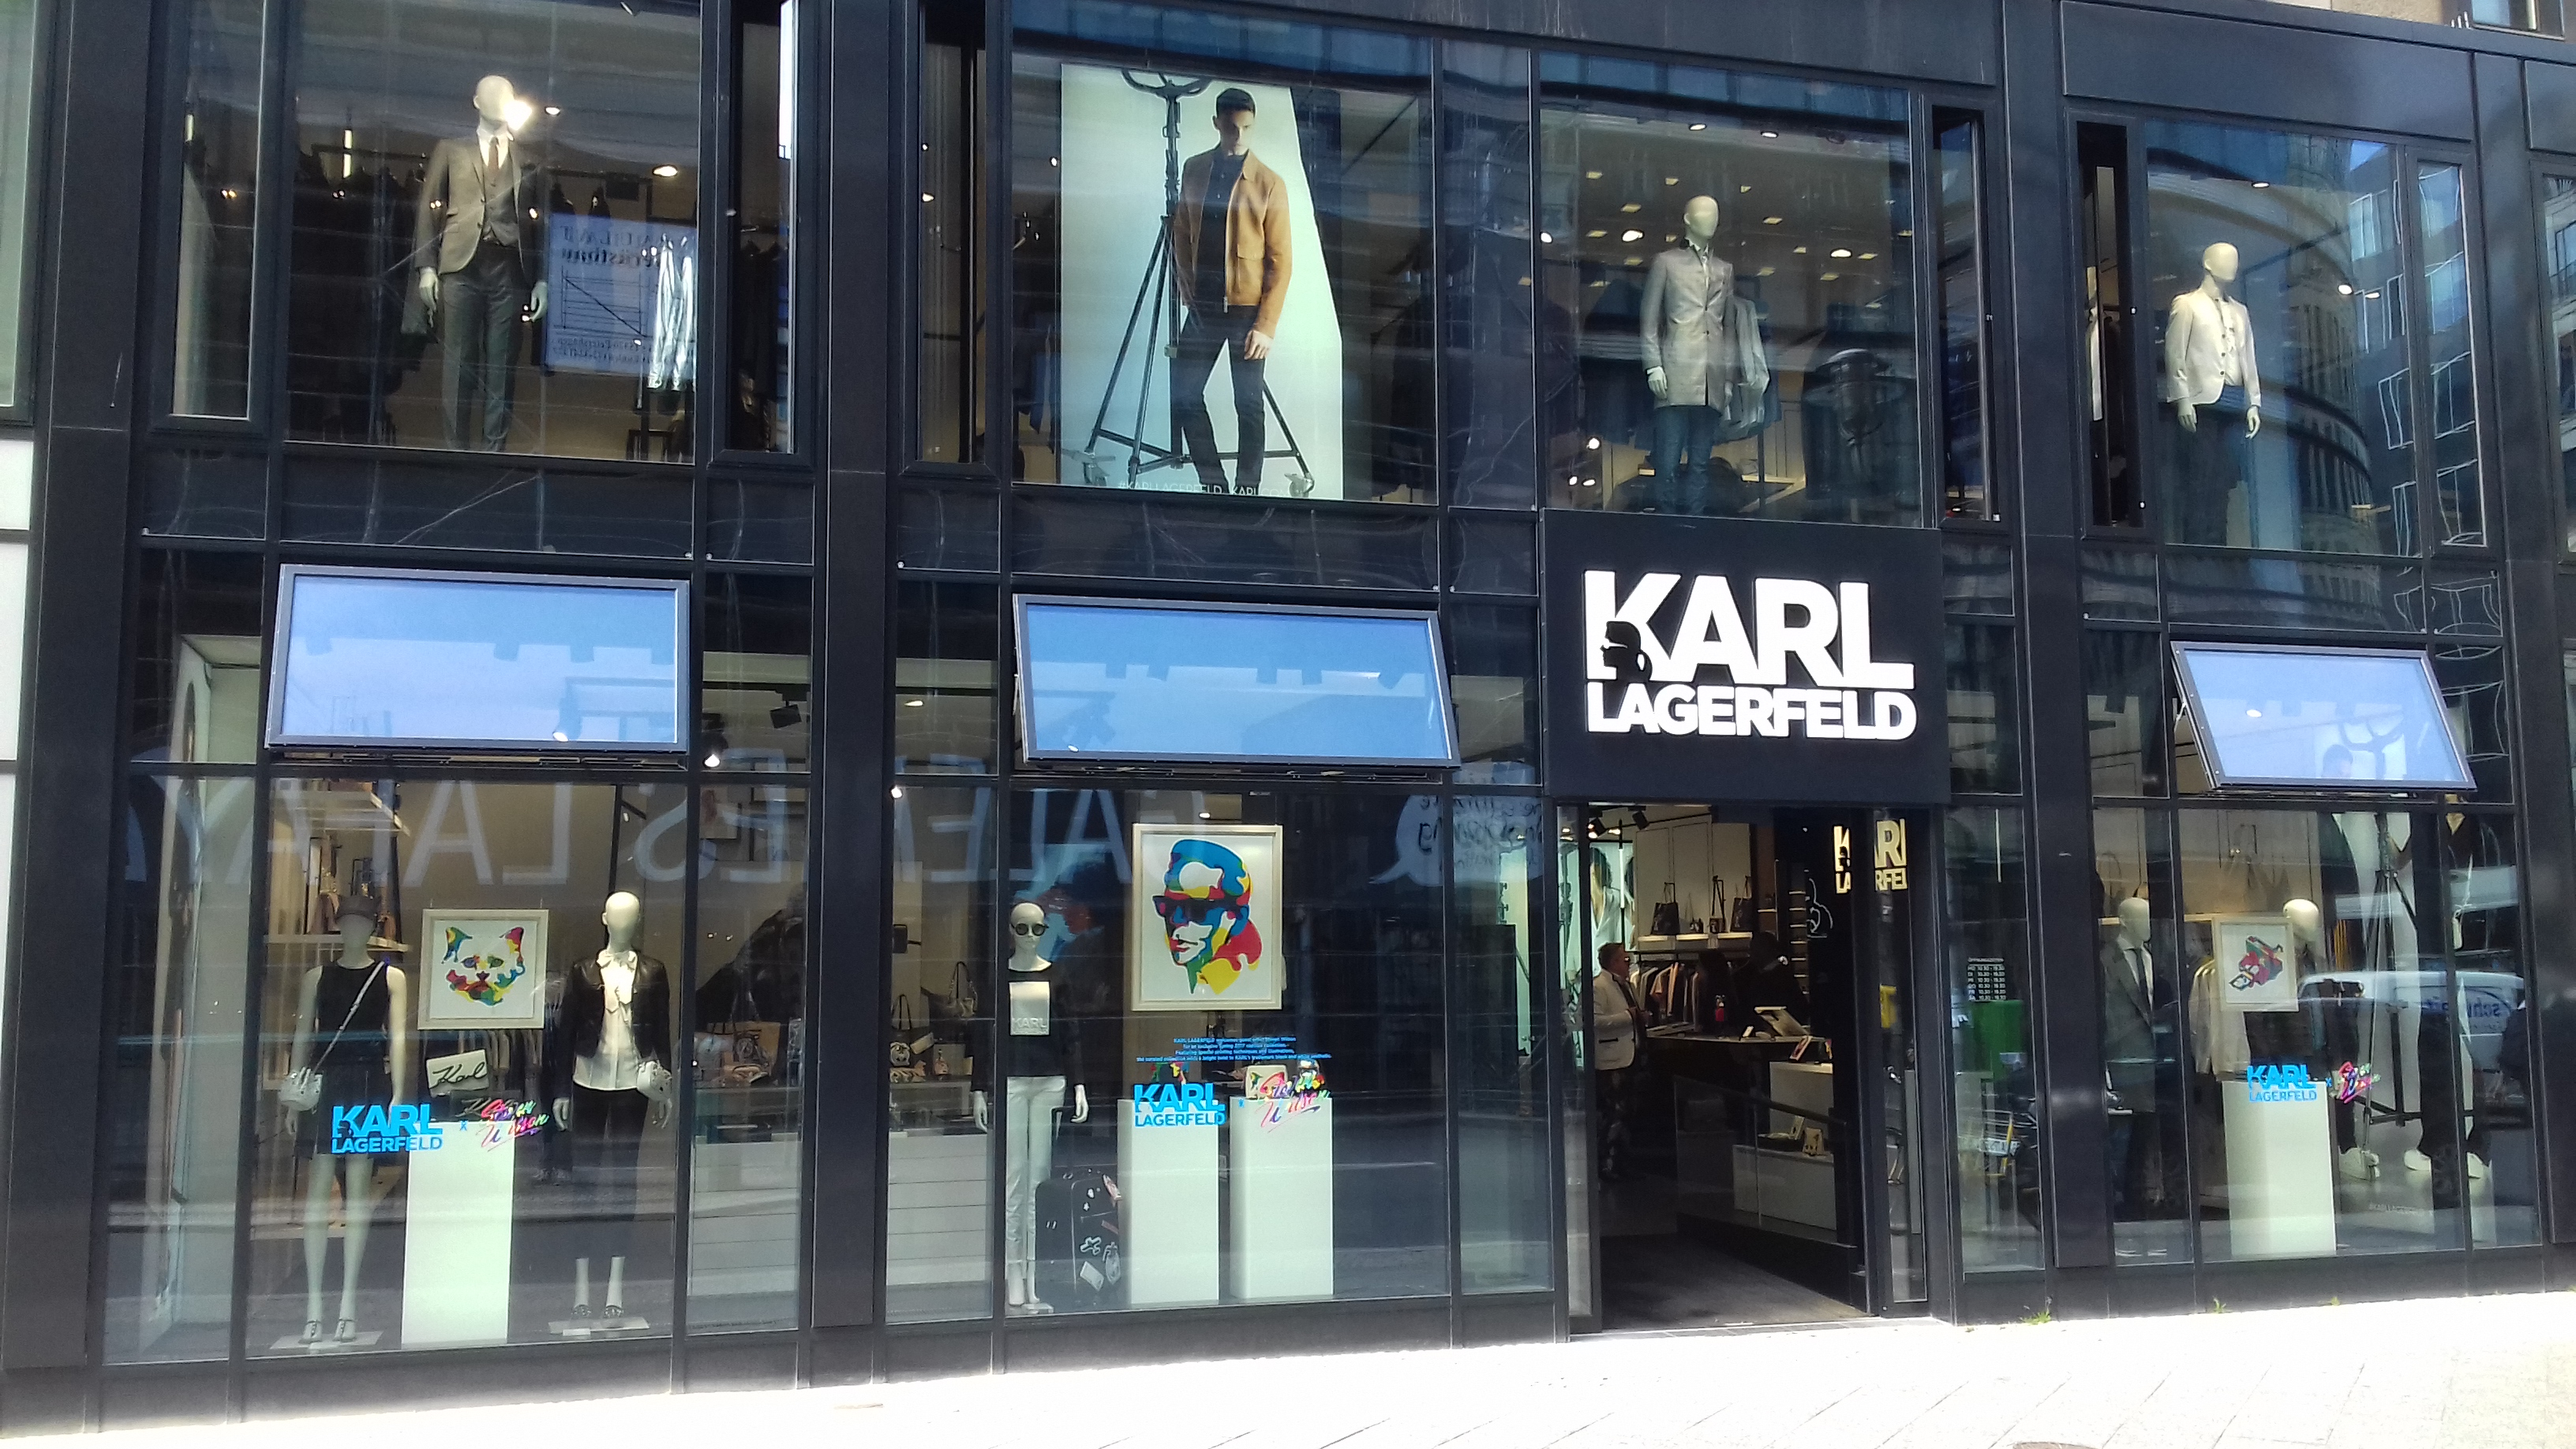 Karl lagerfeld steckbrief promi for Wohndesign 2 fermob store in berlin